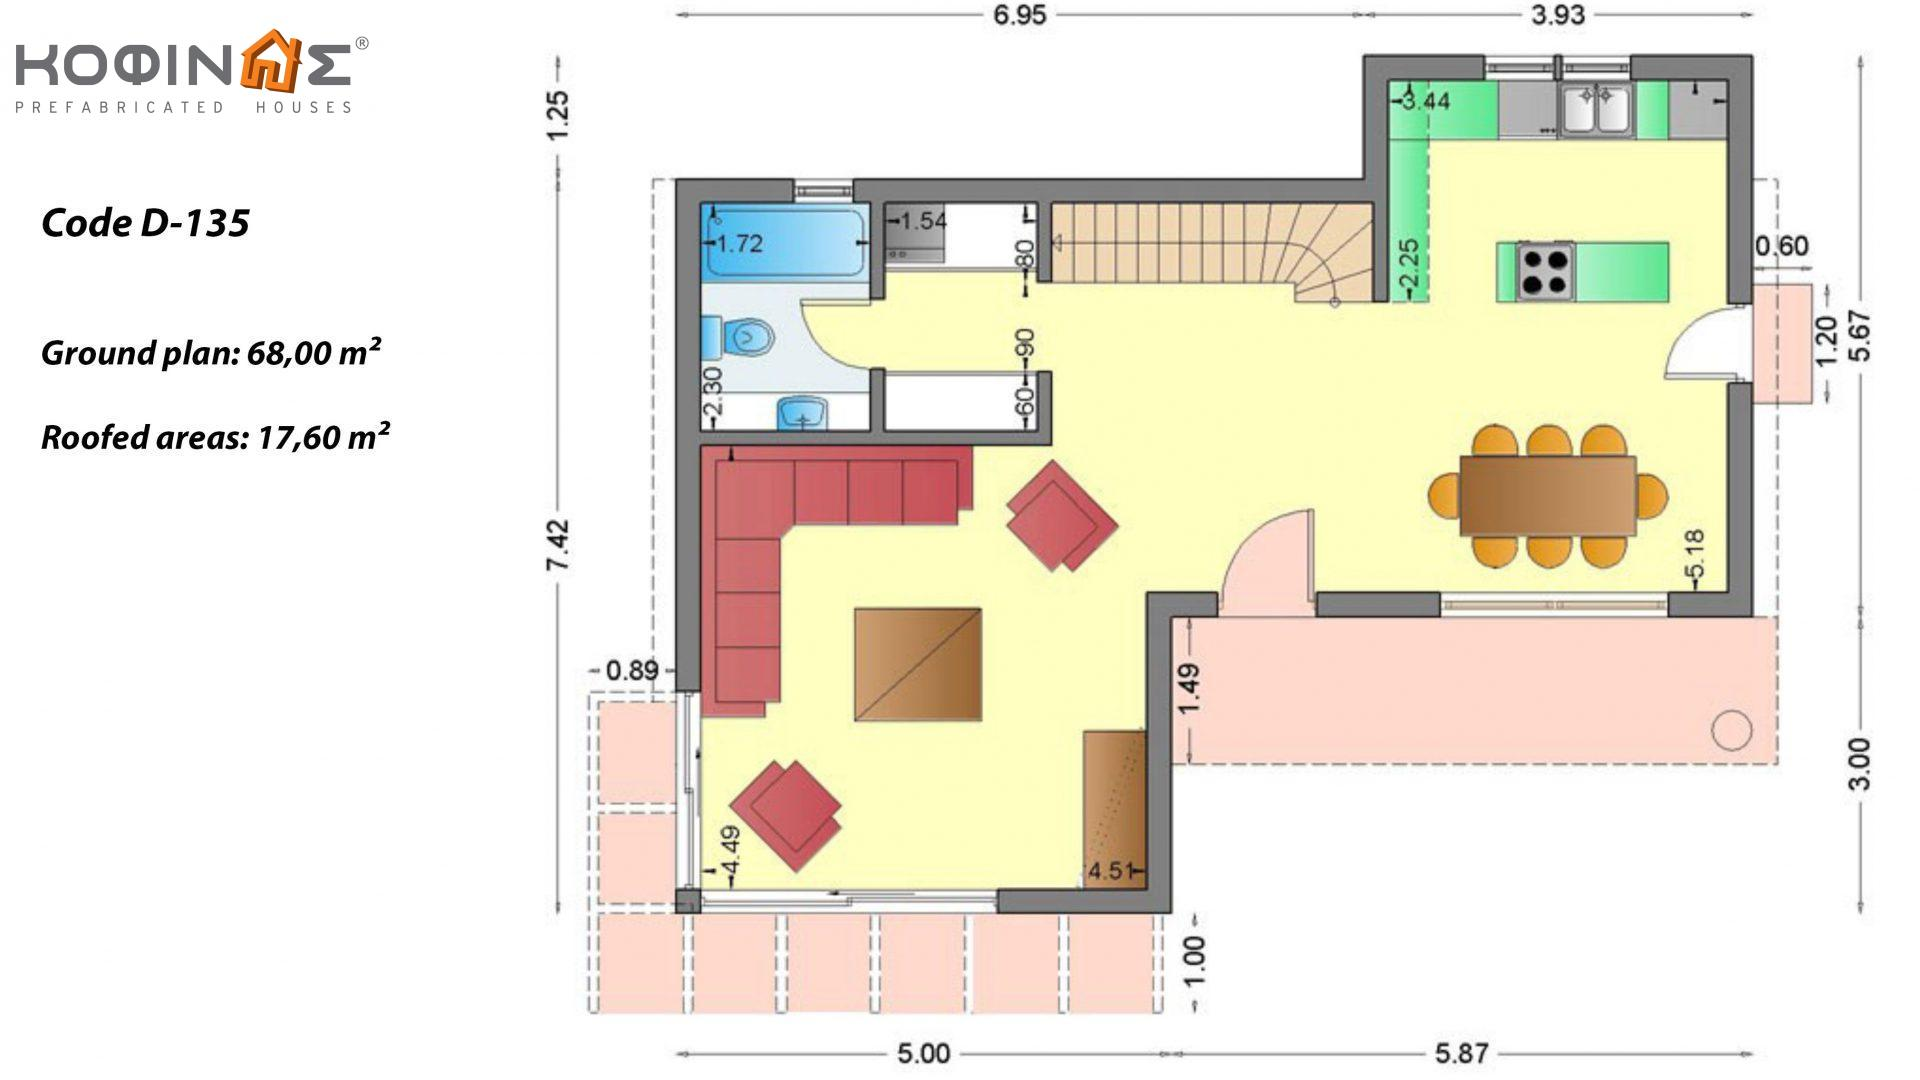 2-story house D-135, total surface of 135,20 m²,roofed areas 17.60 m²,balconies 12.41 m²